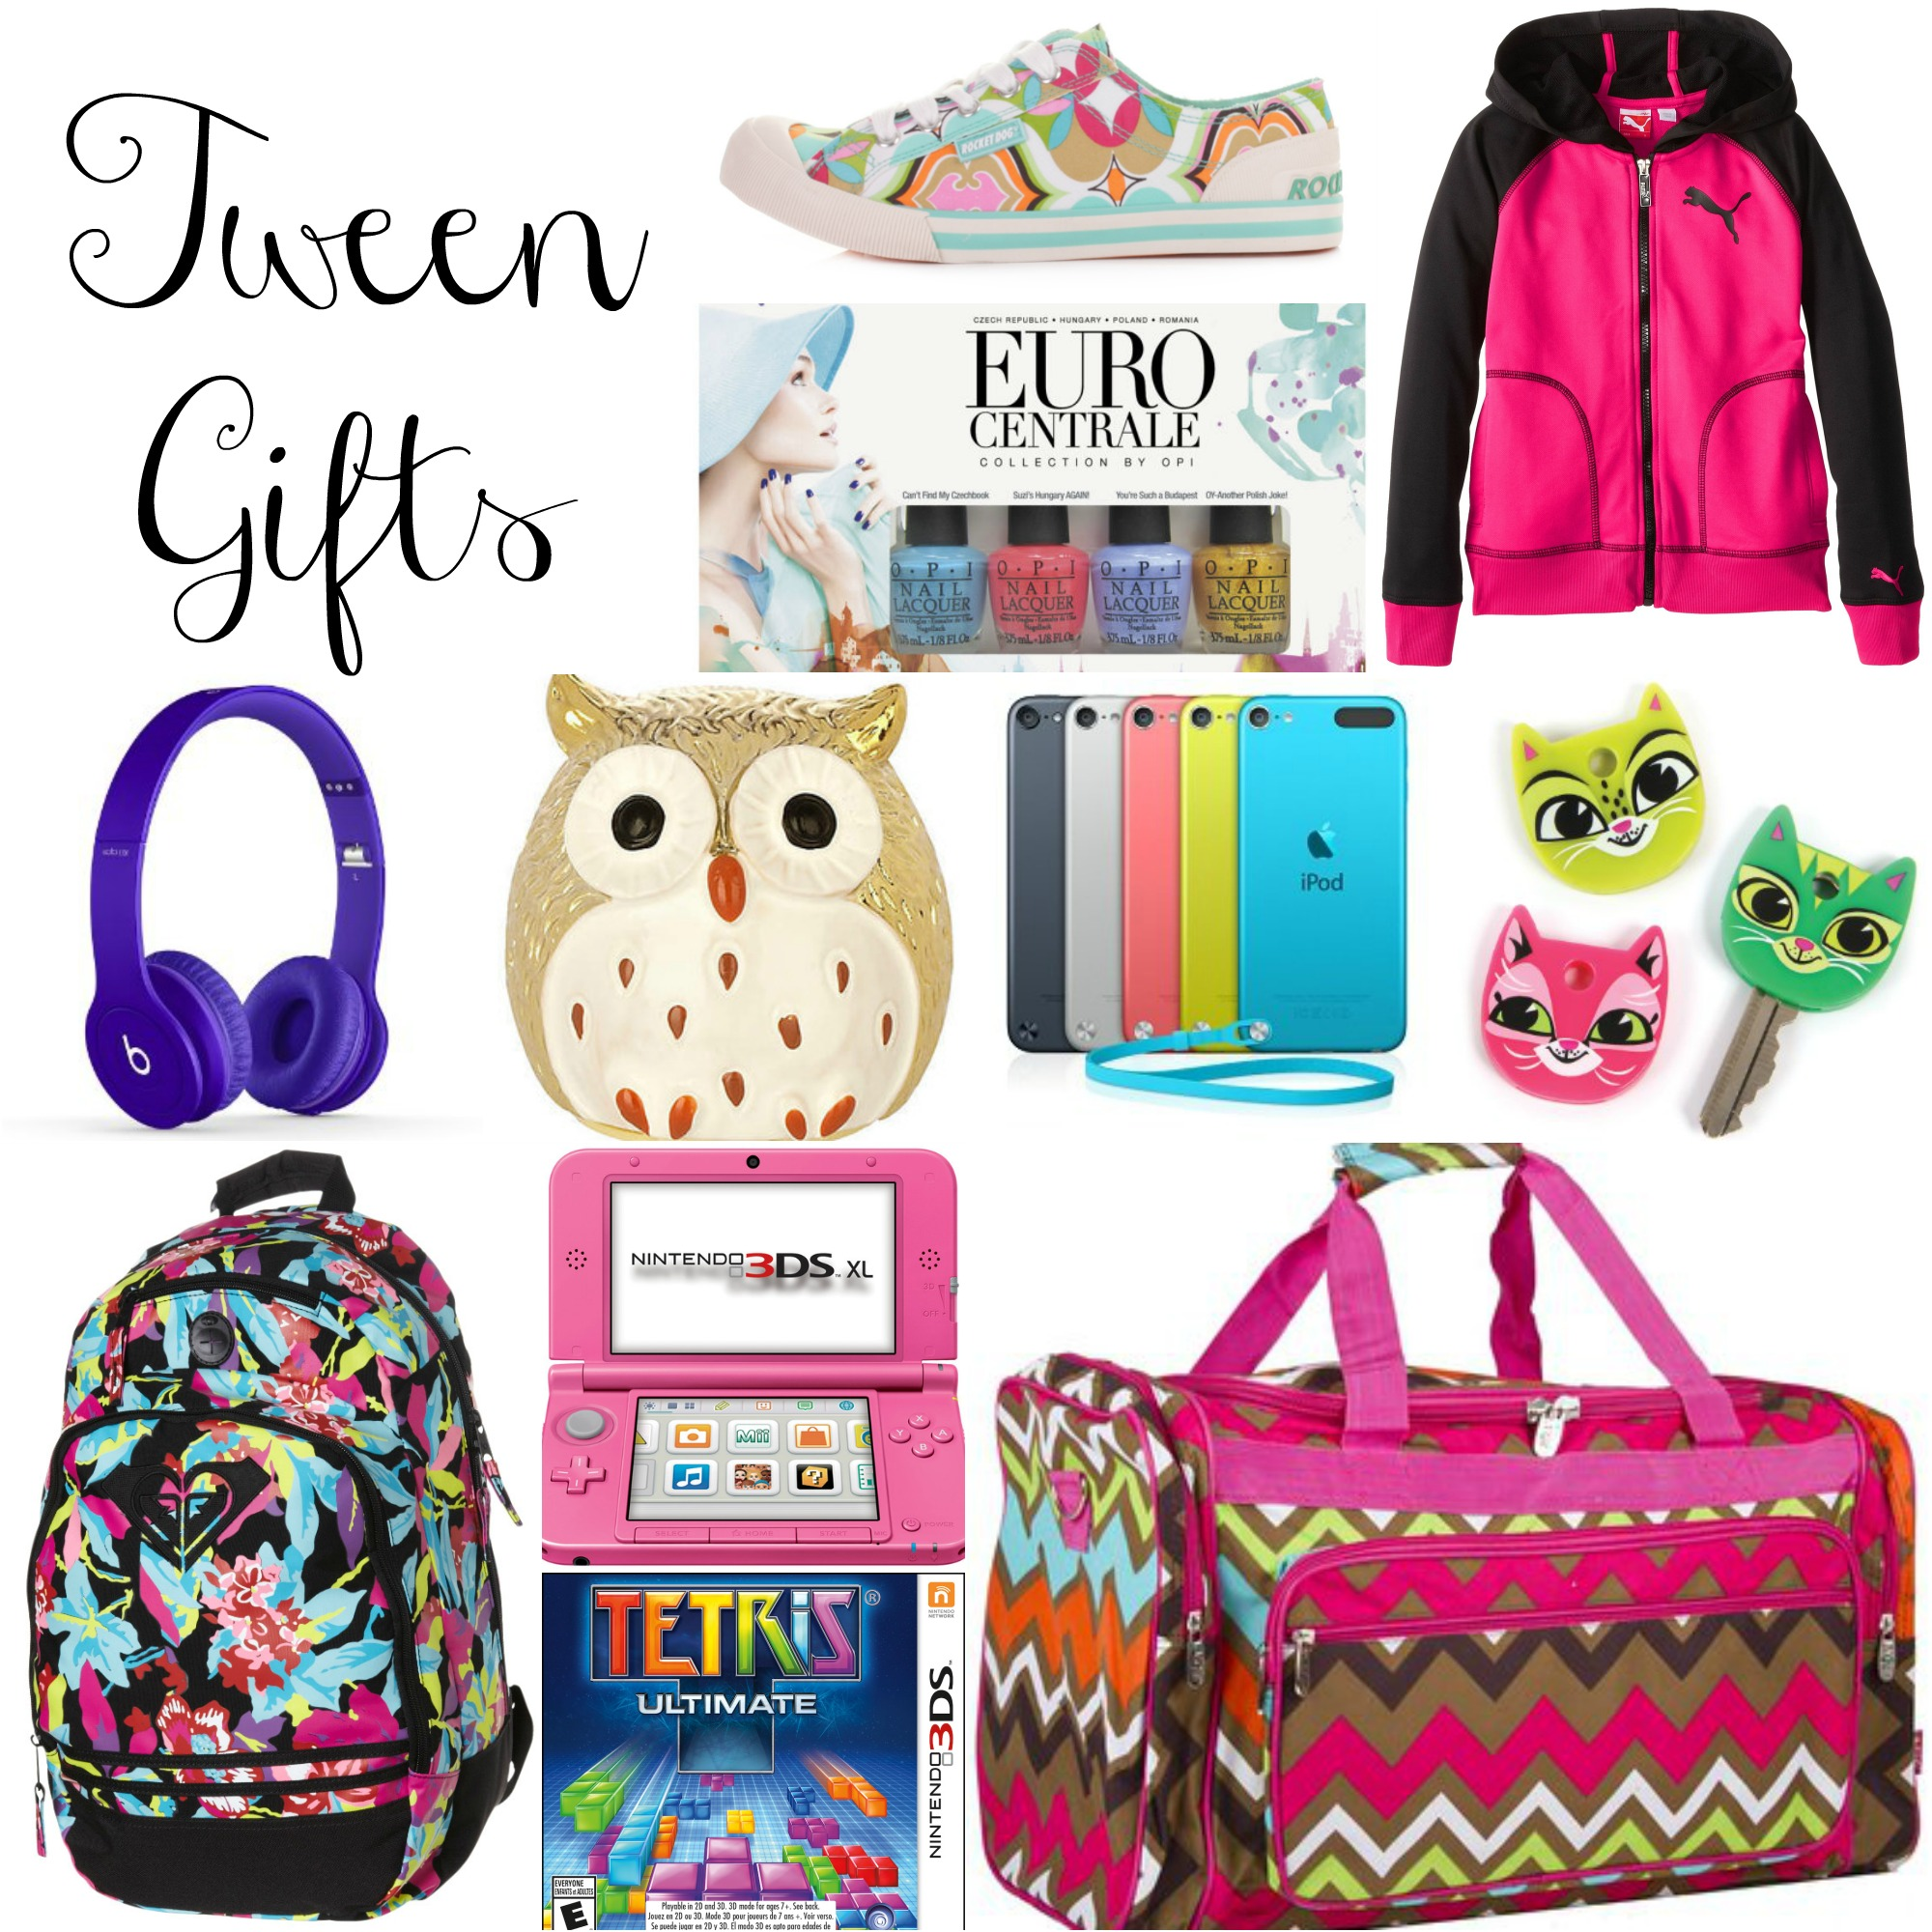 Teenage Bedroom Gift Ideas 21 great gifts for tweens | confessions of a